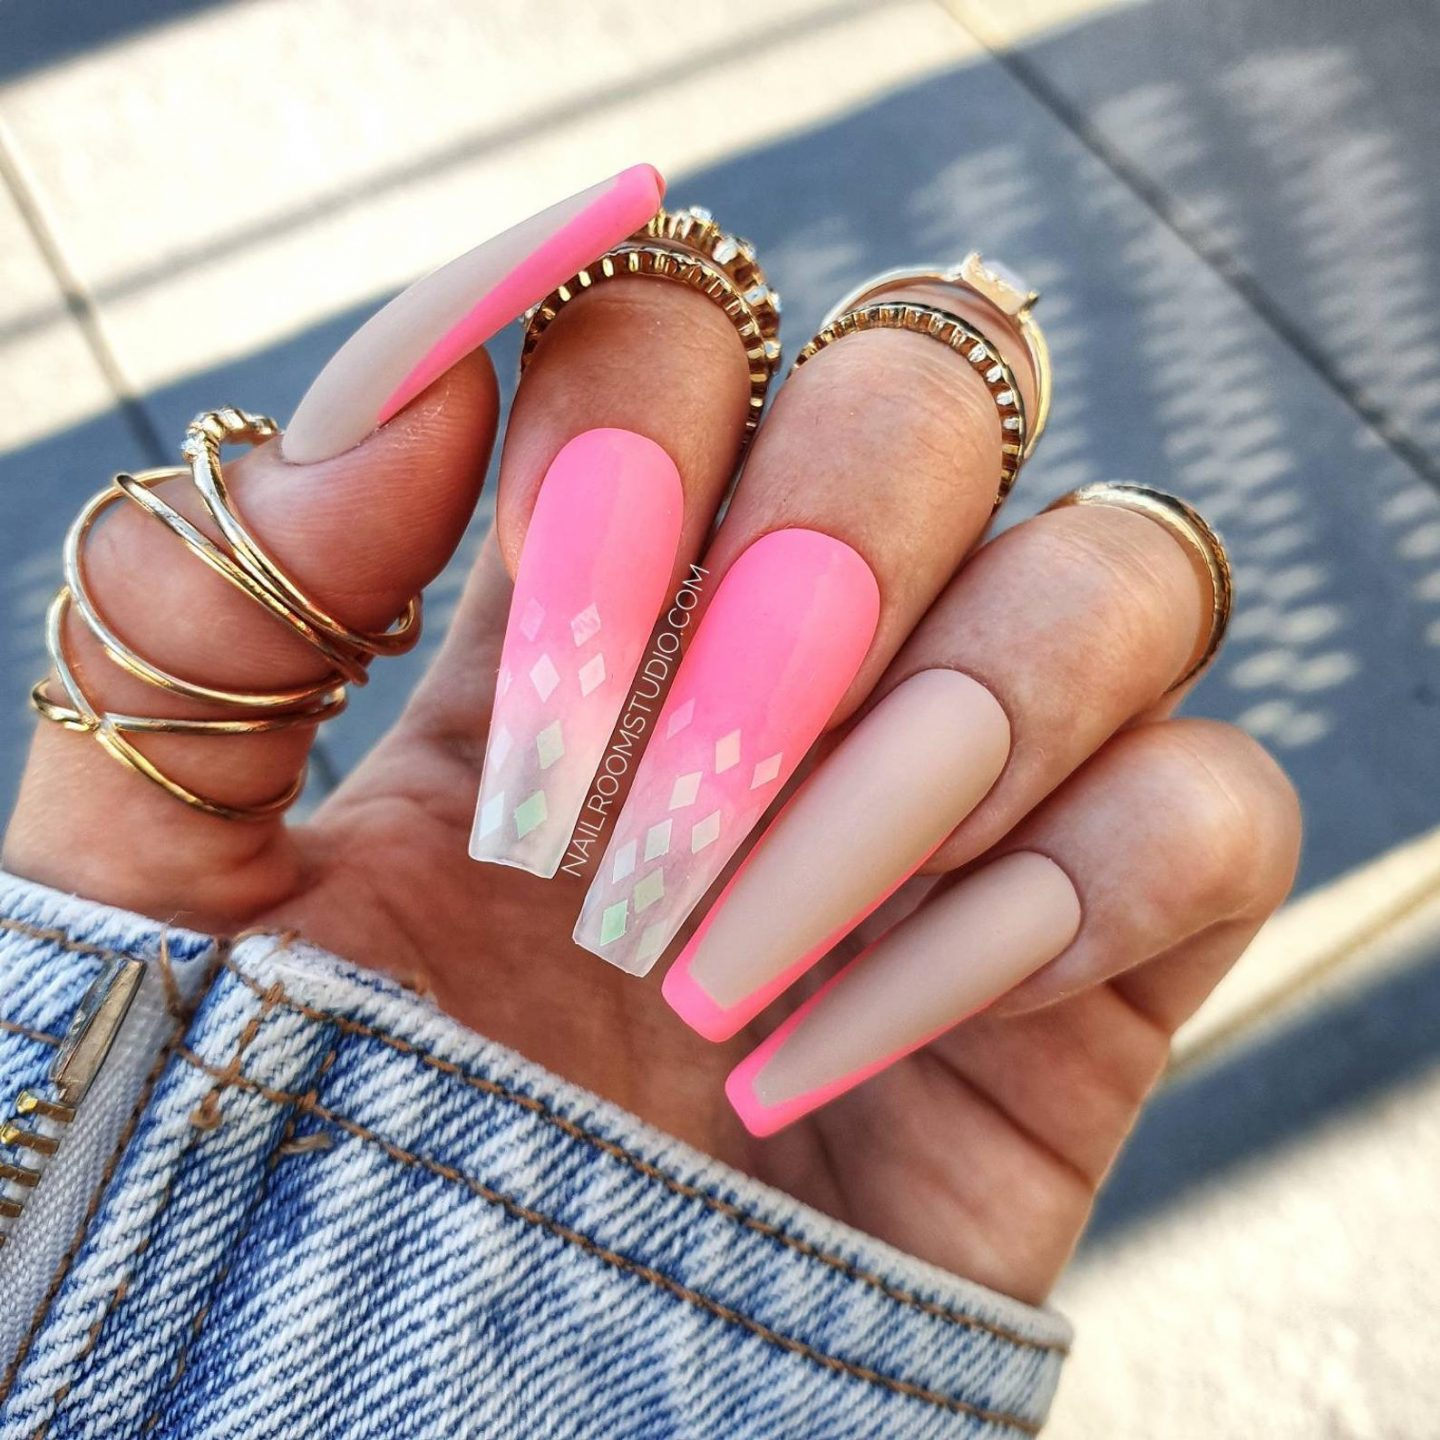 Neon pink French tip coffin nails